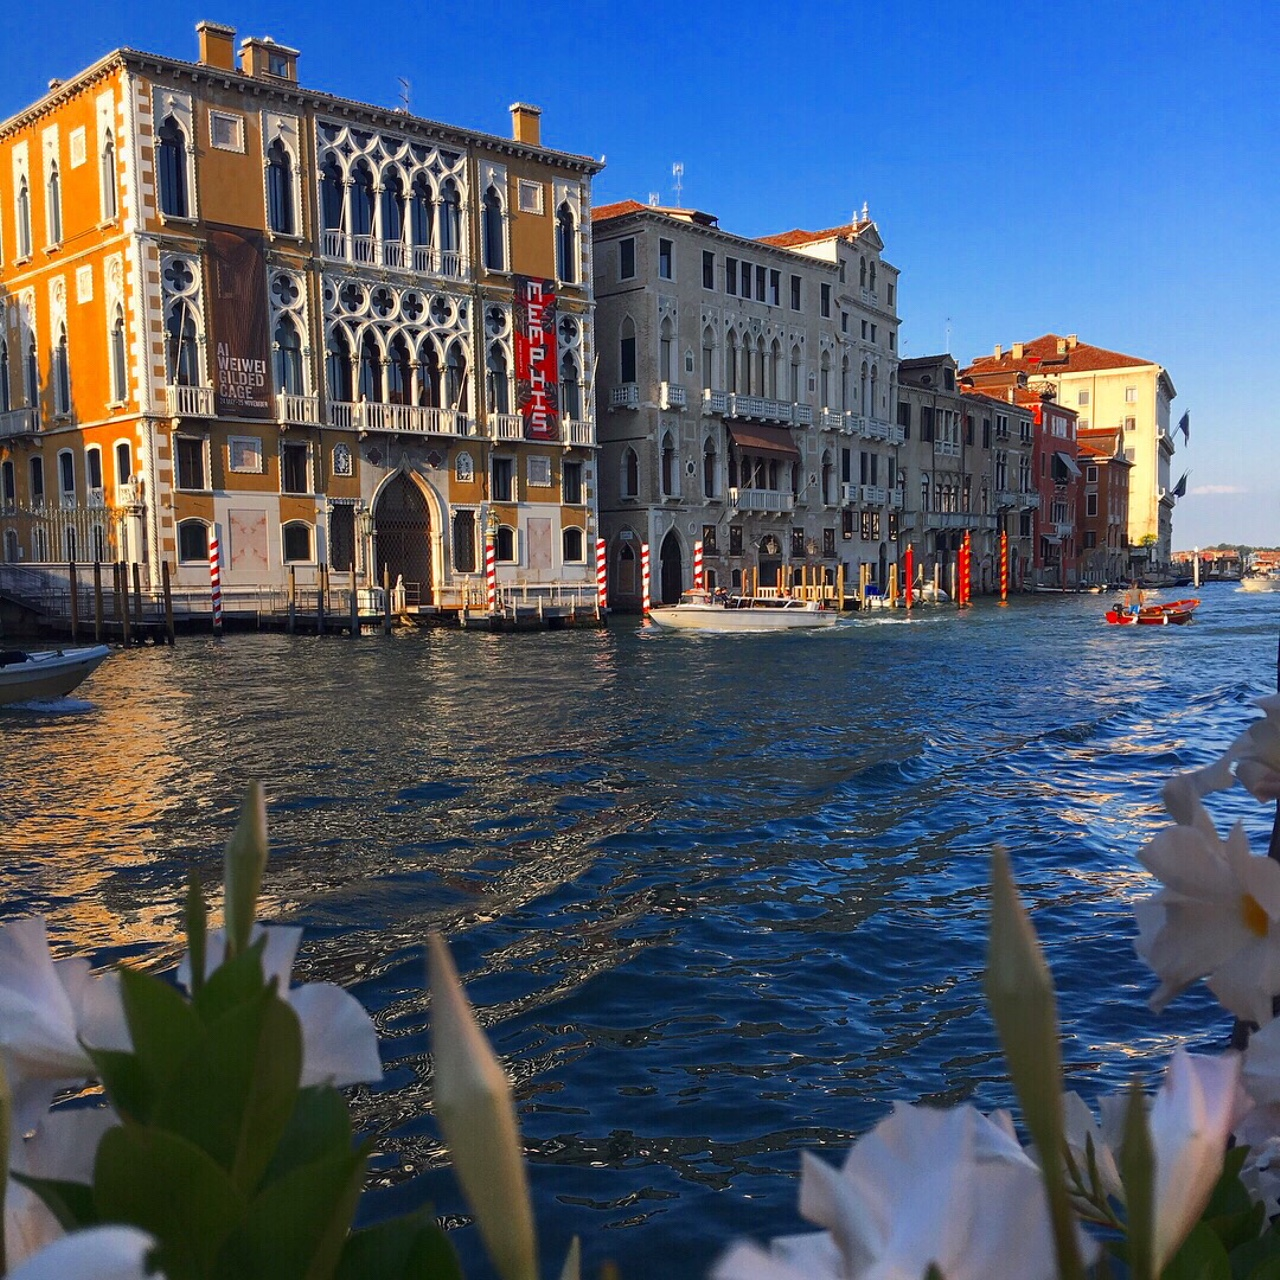 Venice can be a fabulous day trip from Rome when you take the high speed train. Learn more about it as well as 9 other fantastic day trips from Rome by train